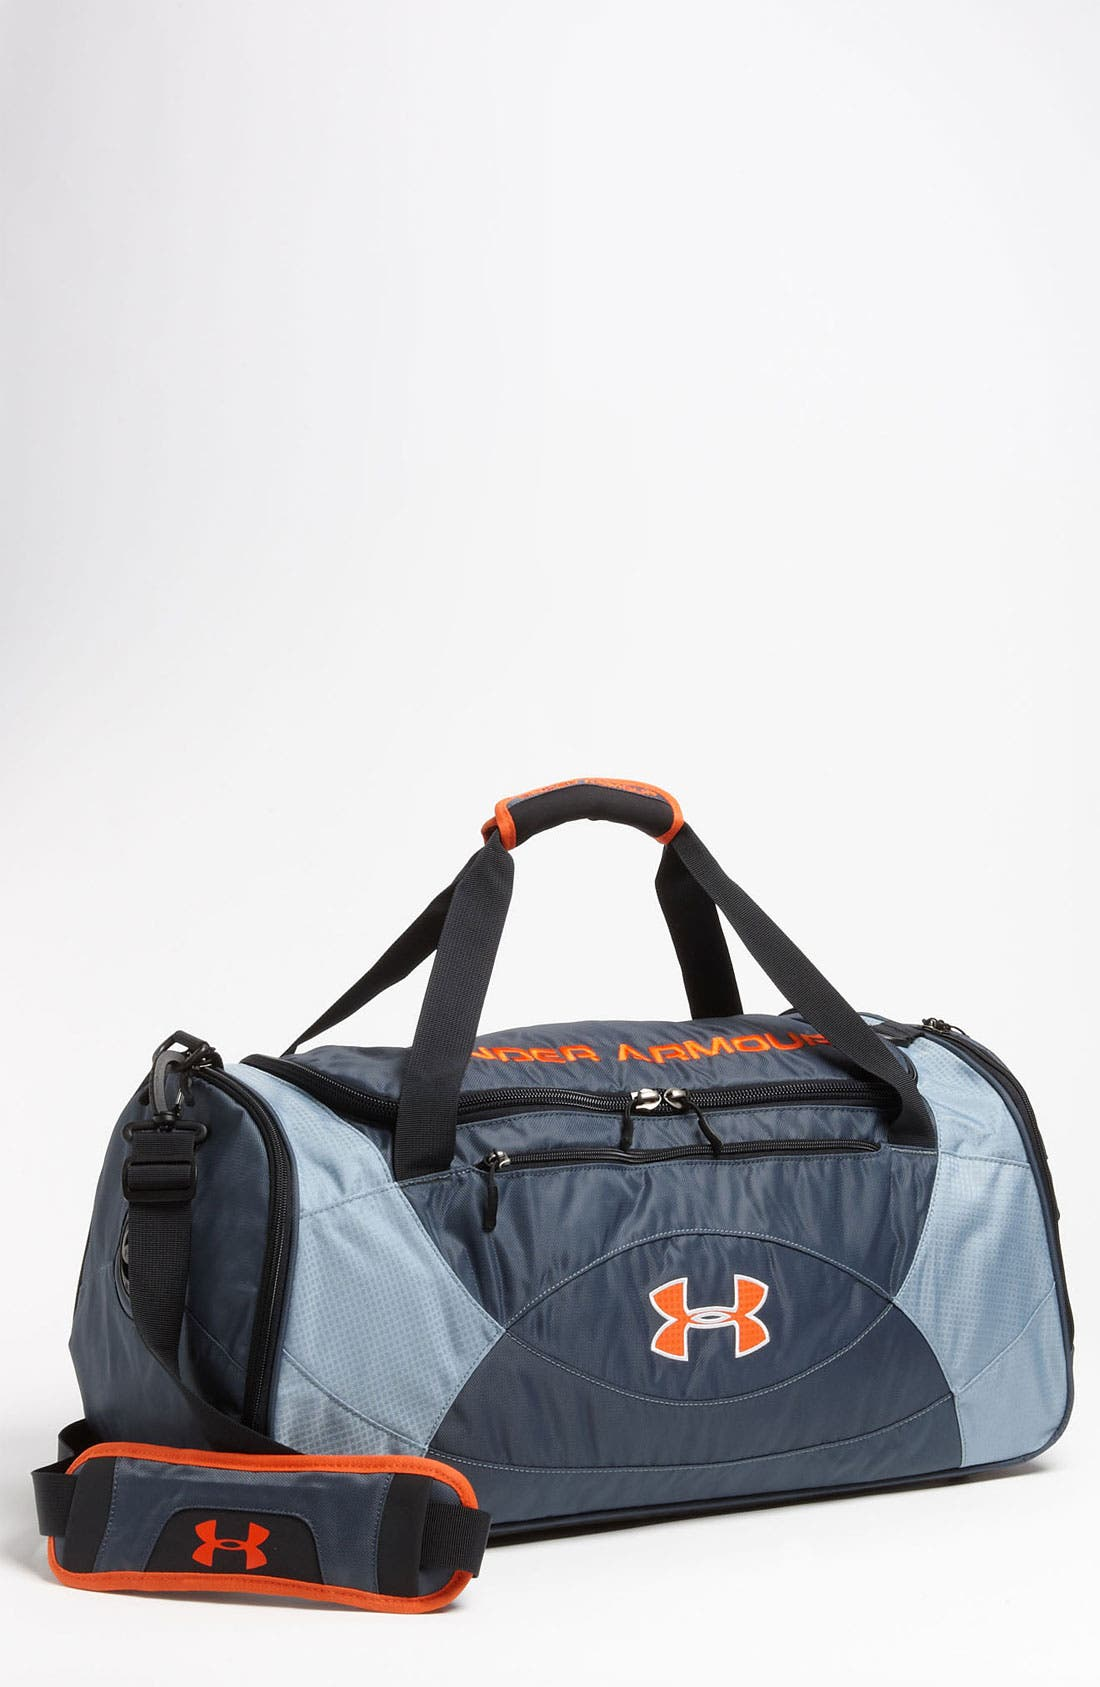 Alternate Image 1 Selected - Under Armour 'Overtime' Duffel Bag